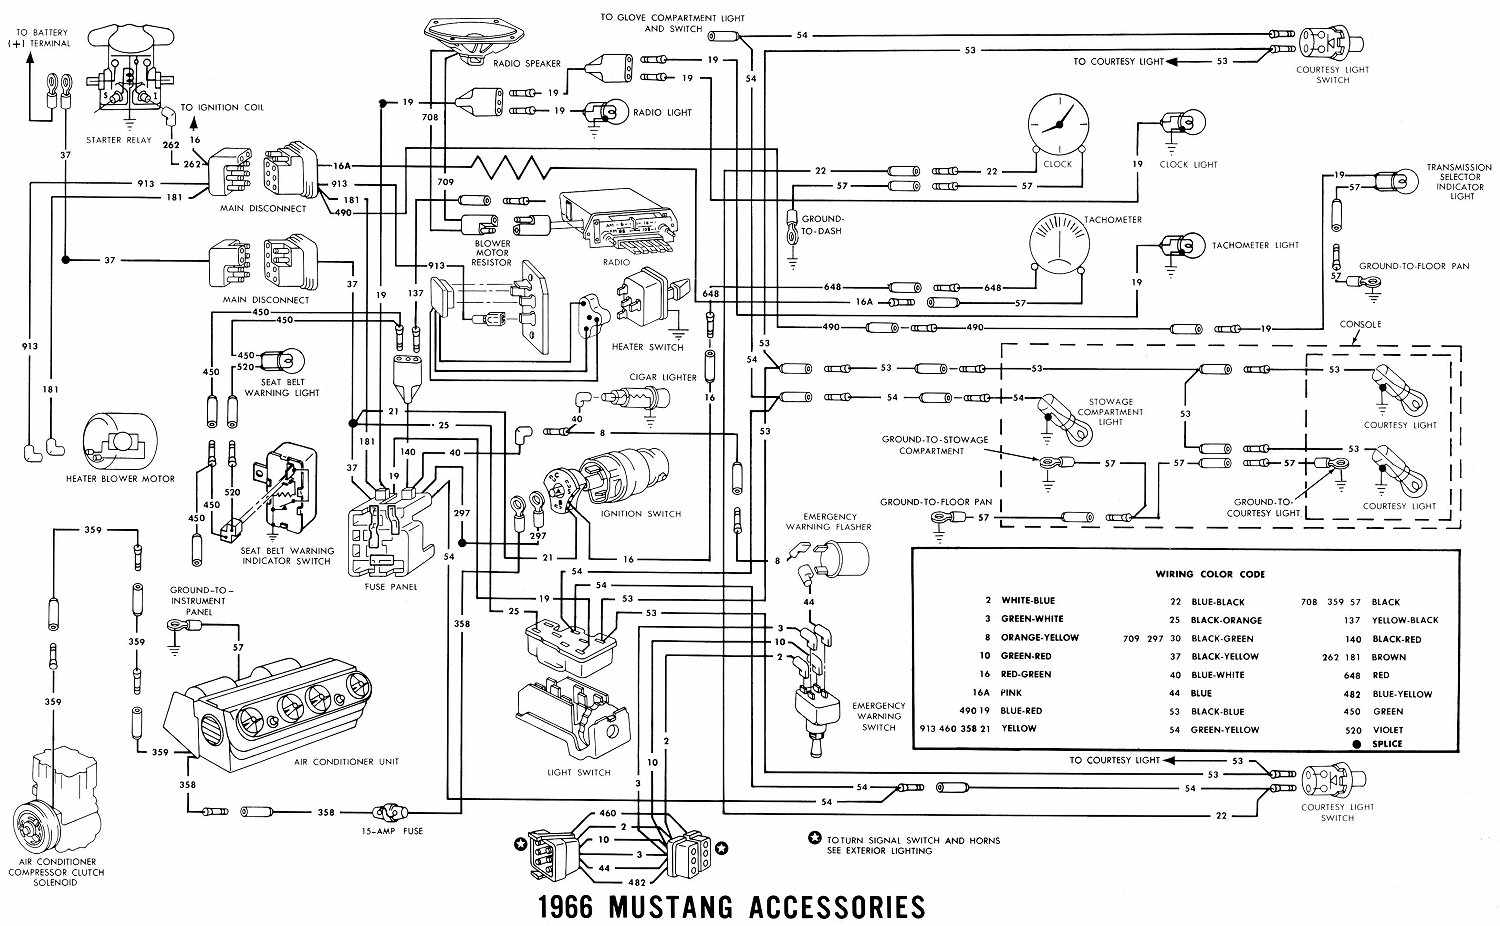 Farmtrac Tractor Model 45 Wiring Diagram | Online Wiring Diagram